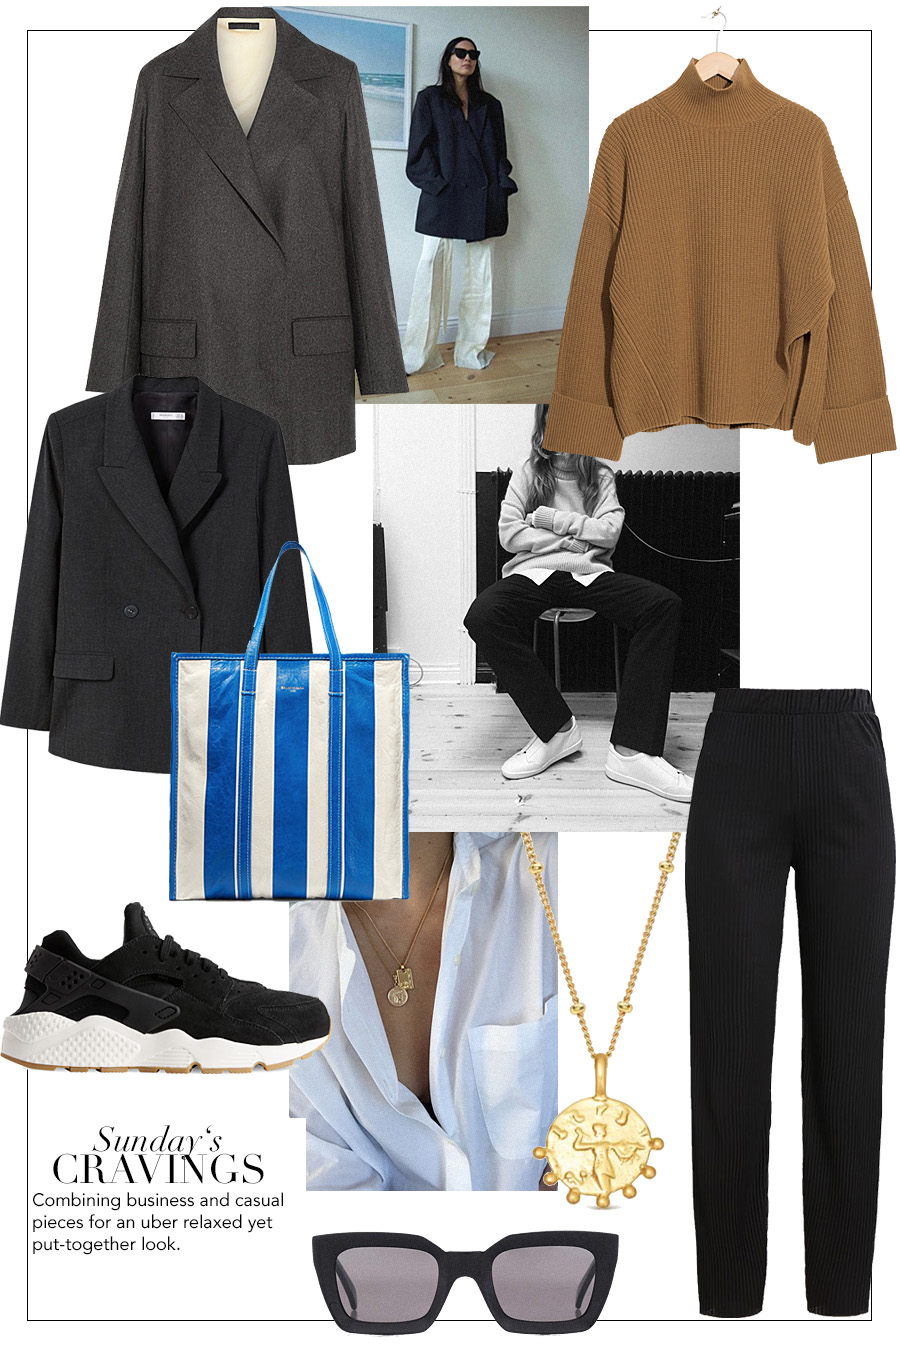 Blazer – Mango. Oversized Blazer – The Row. Knit jumper – & Other Stories. Bazar Leather Tote – Balenciaga. Huarache Run SD Sneaker – Nike. Coin Necklace – Missoma. Pants – Vila. Kate Sunglasses – Céline